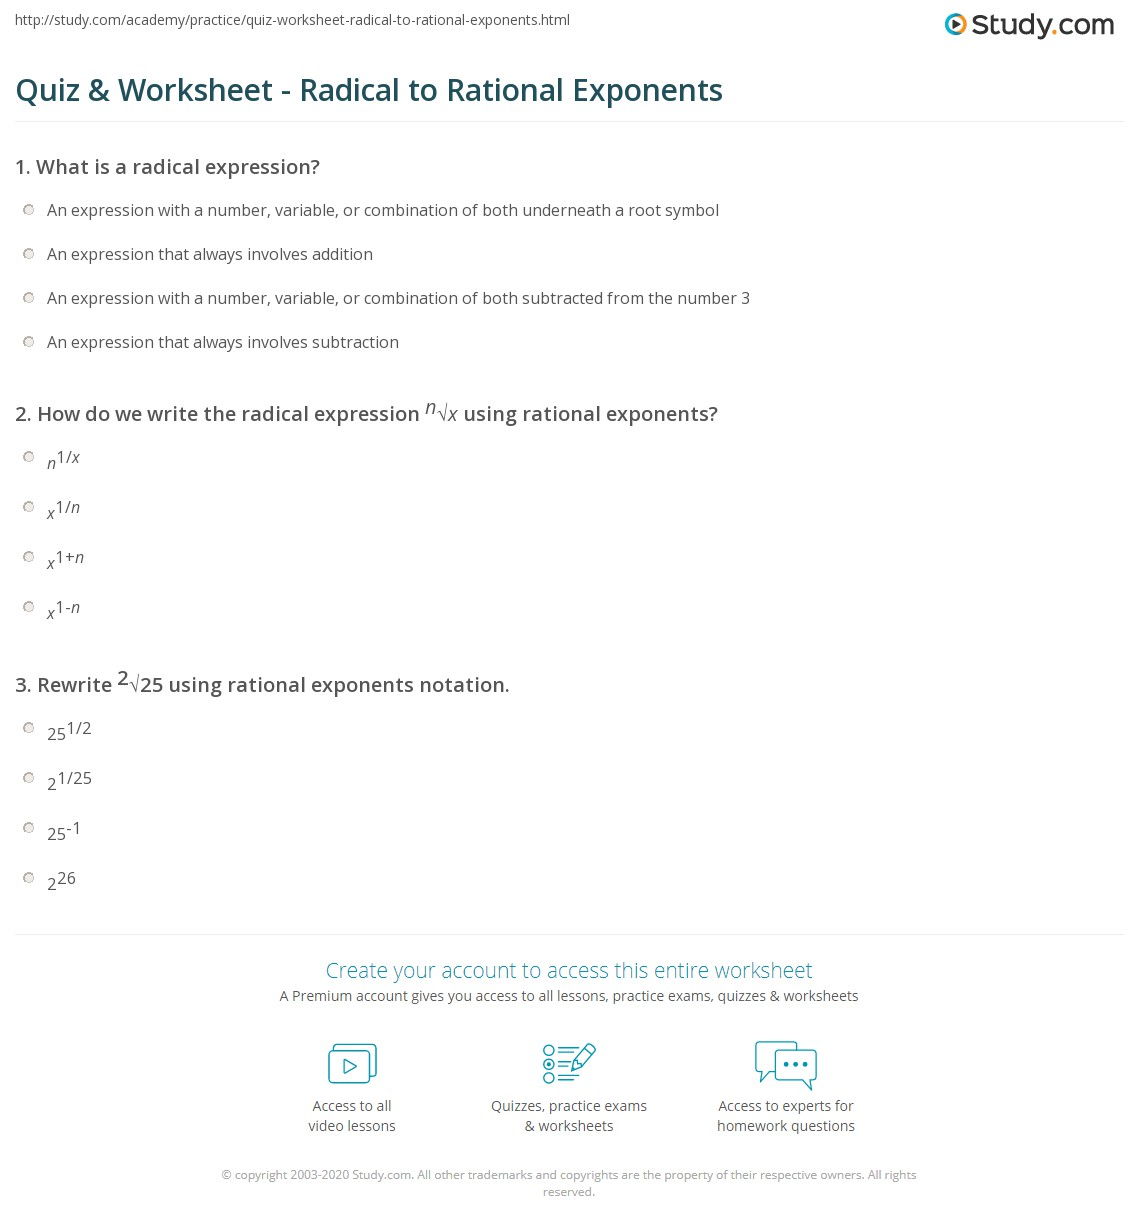 Quiz Worksheet Radical to Rational Exponents – Radicals and Rational Exponents Worksheet